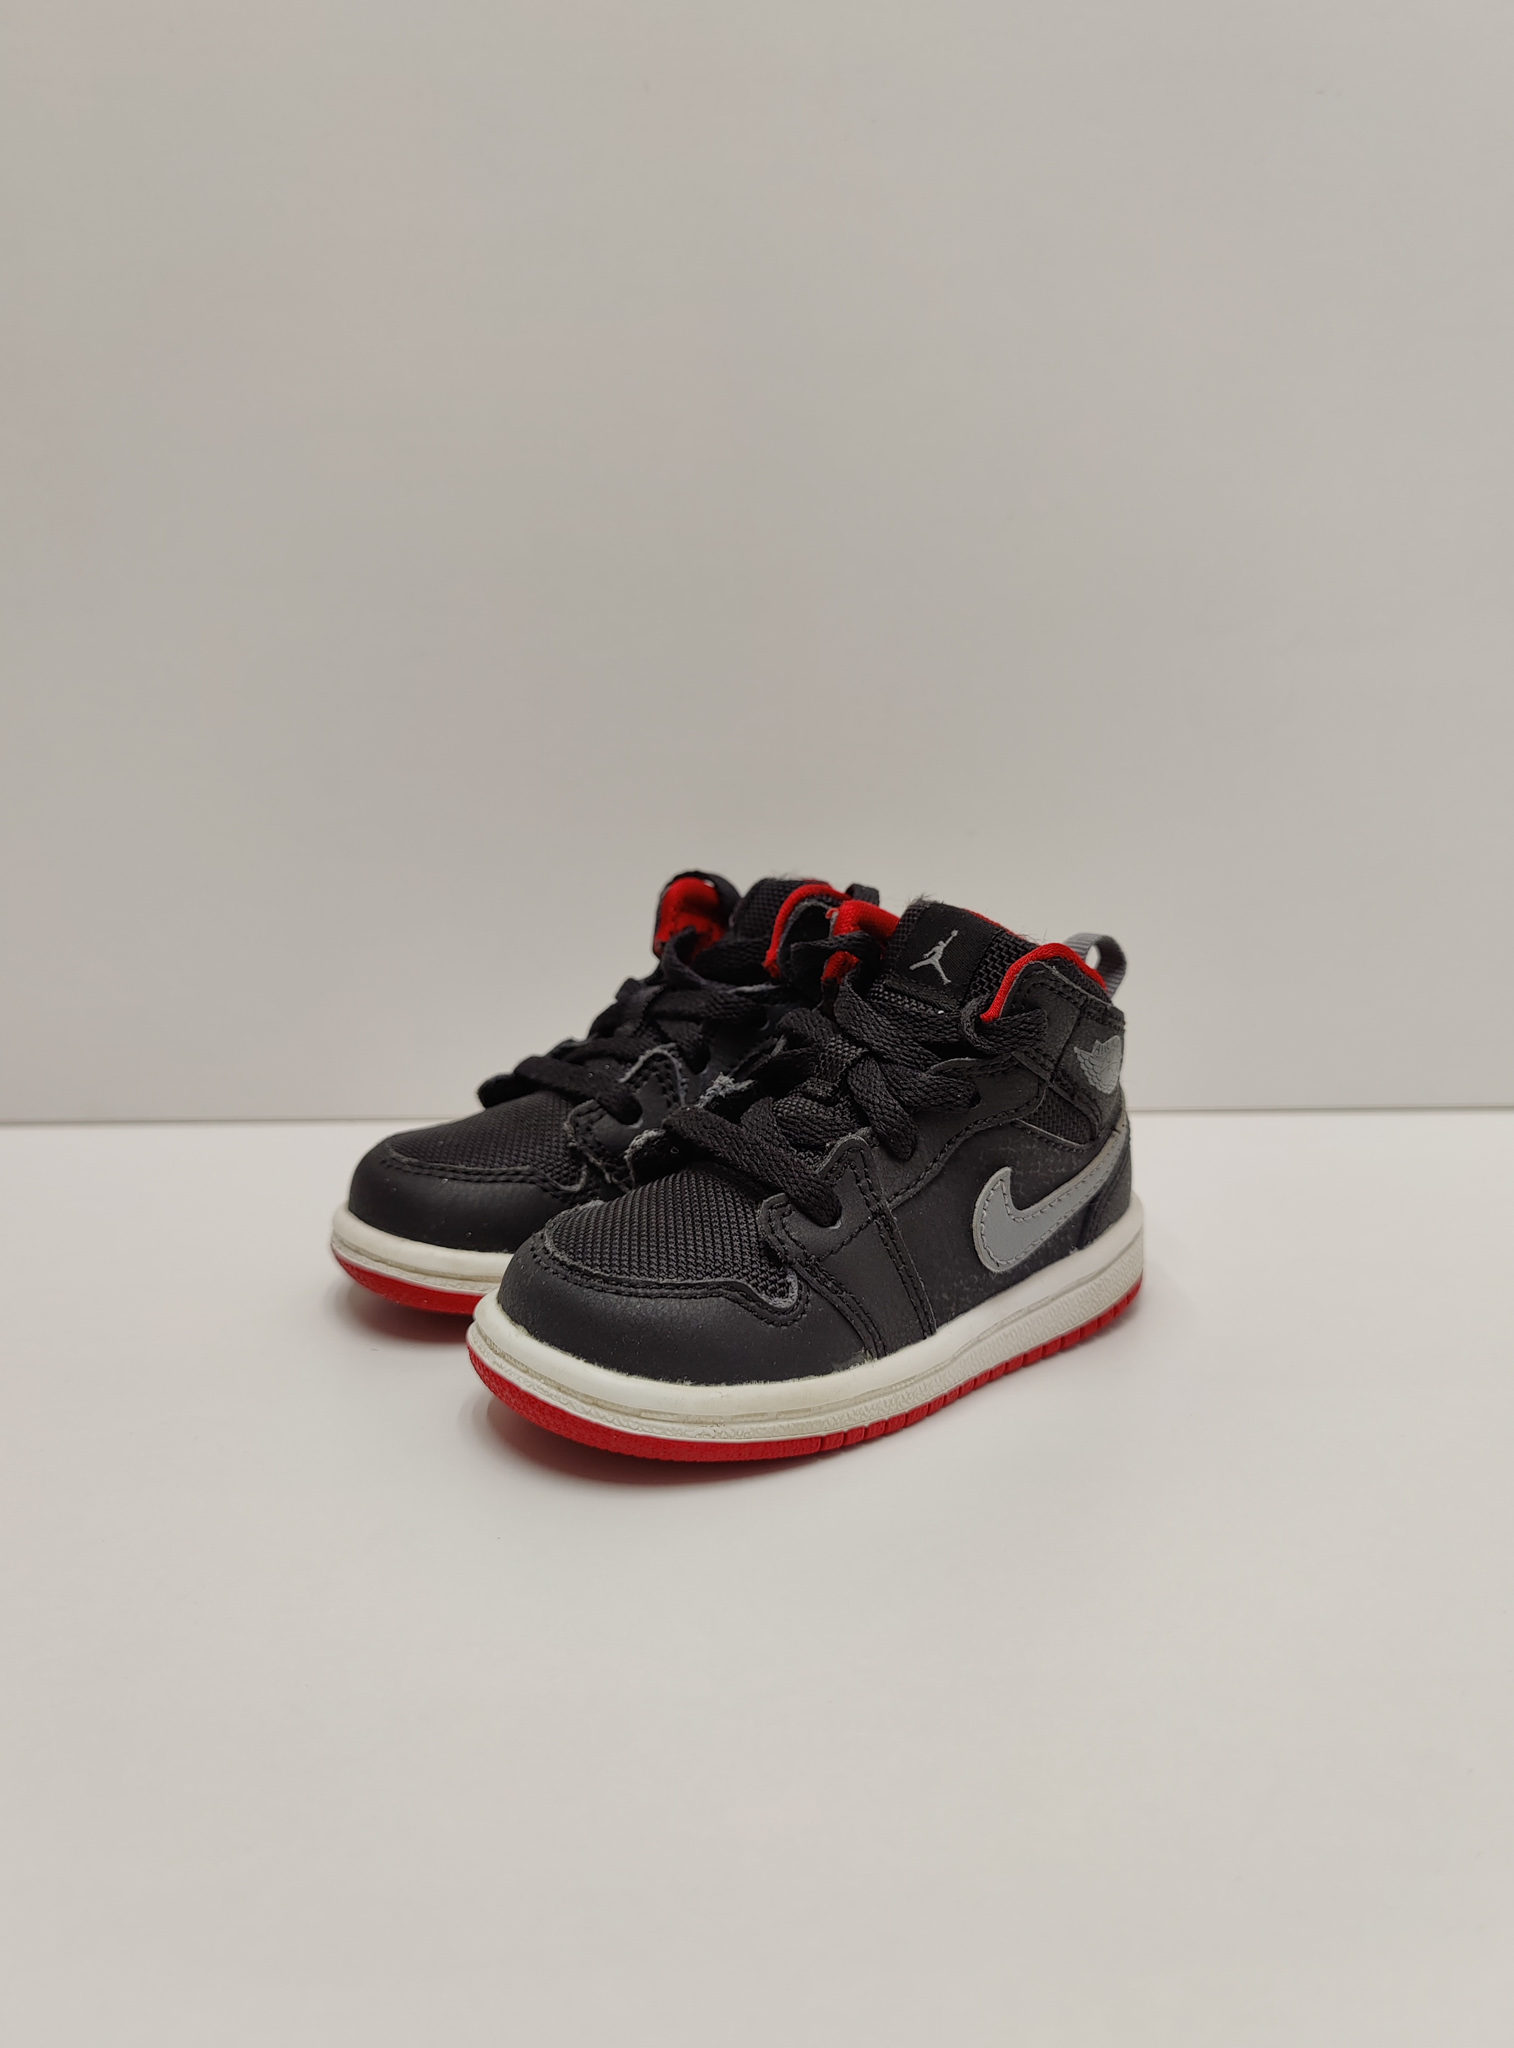 Jordan 1 Retro Mid Toddler